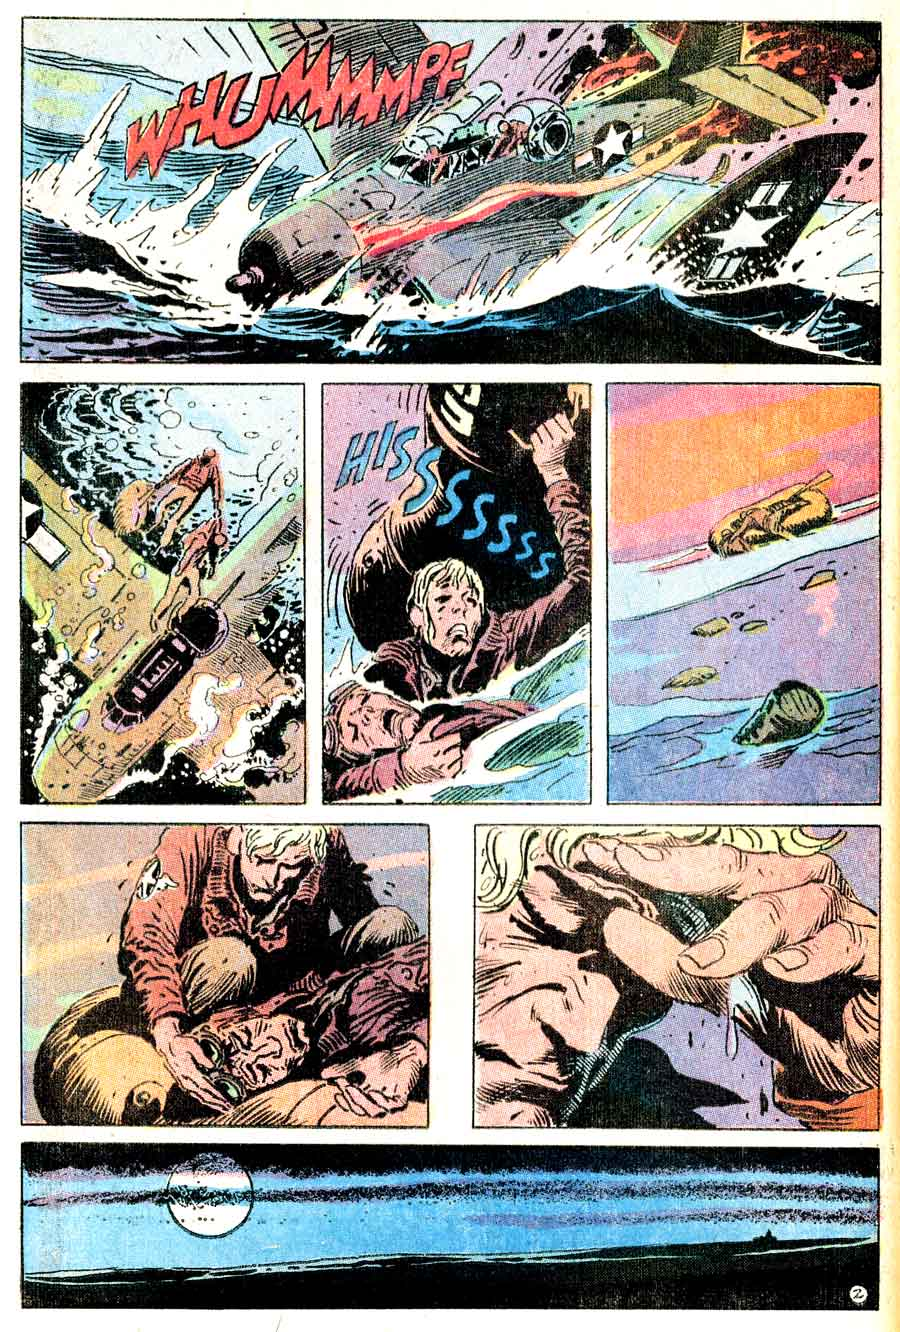 Weird War Tales v1 #3 dc bronze age comic book page art by Joe Kubert